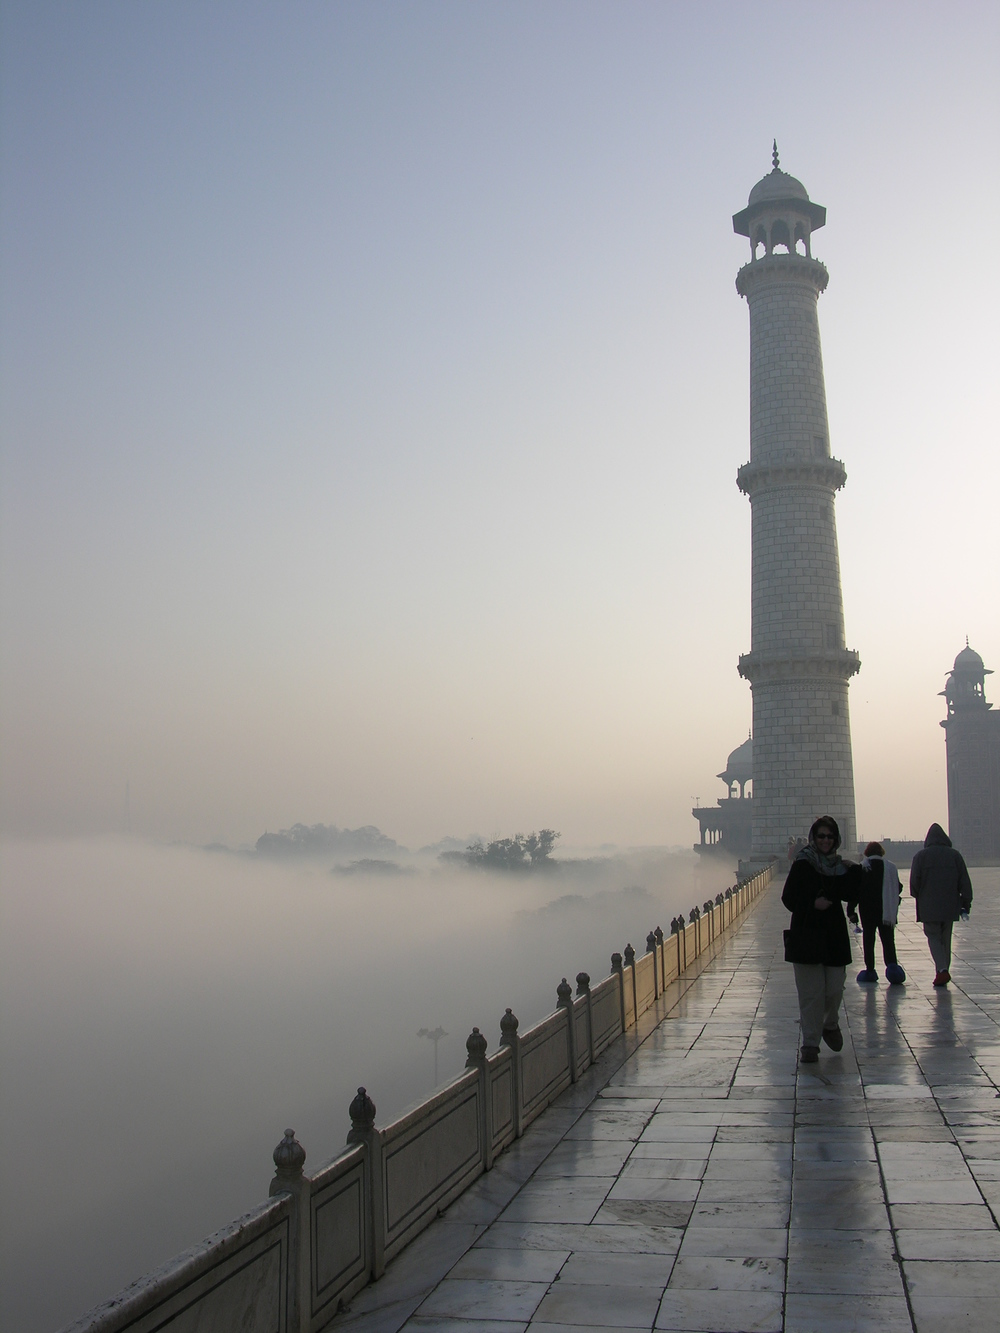 Mist at the Taj Photo credit: Sanjay Chatterji